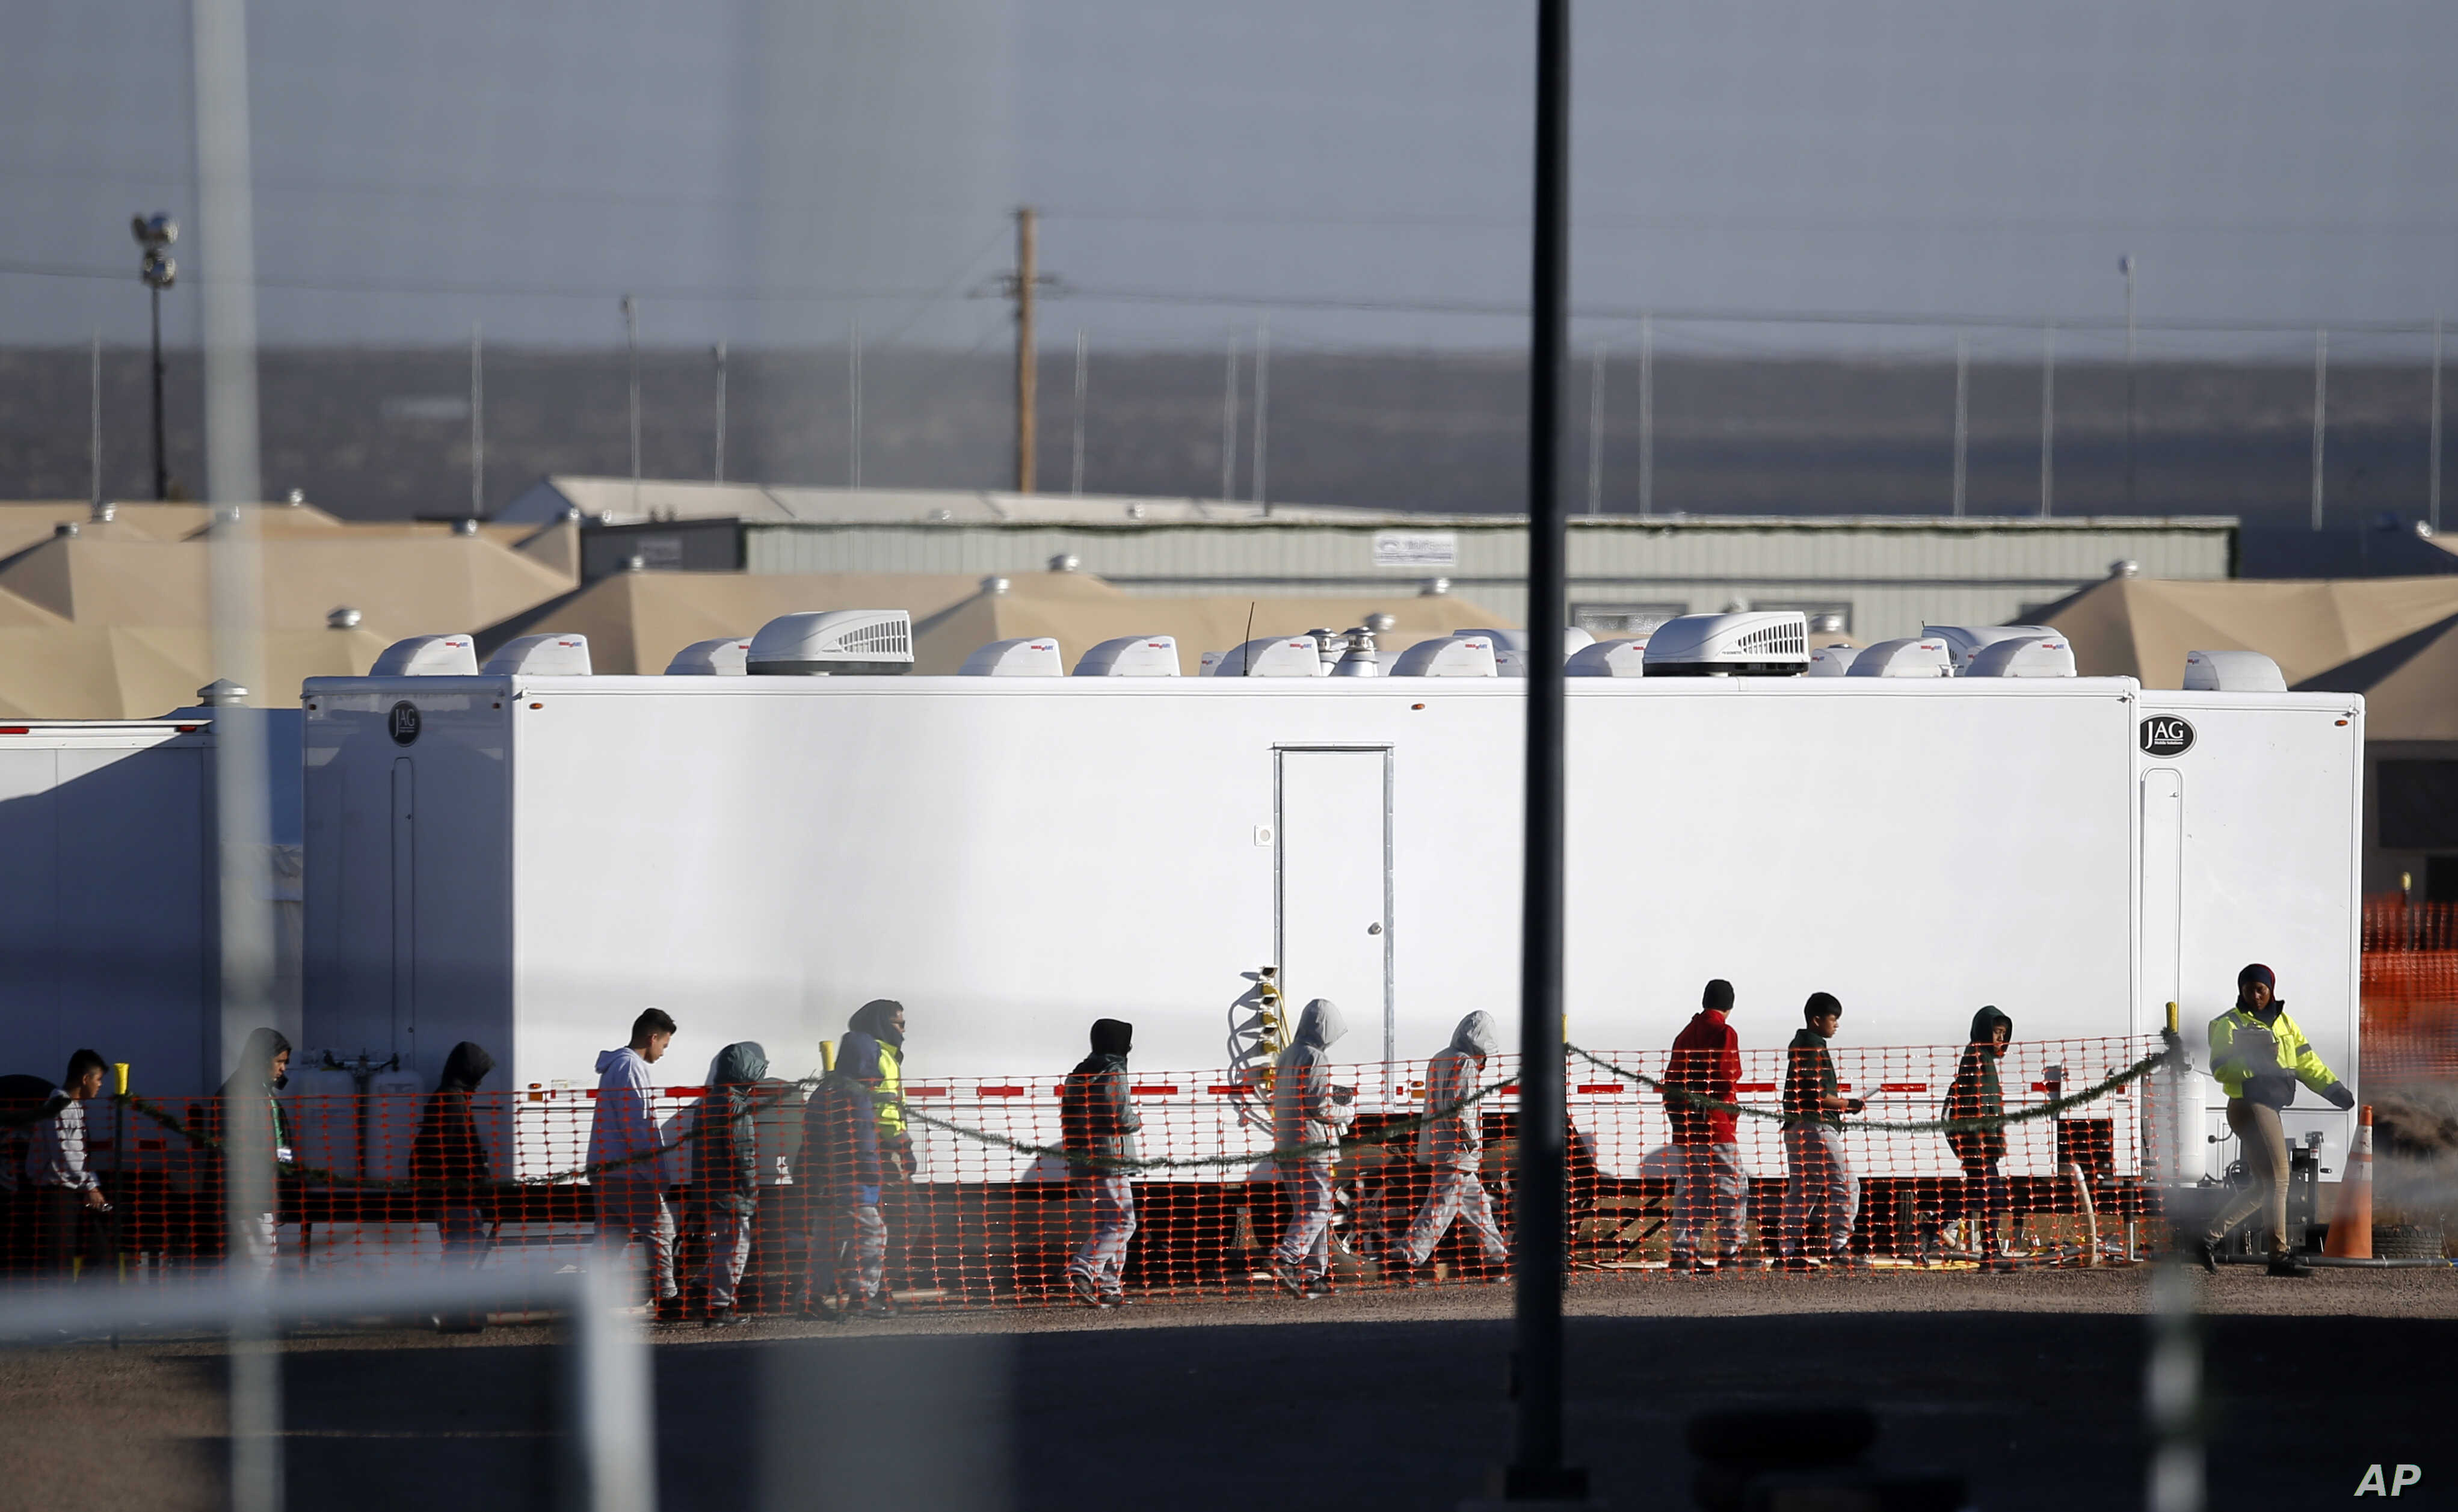 Migrant teens walk in a line through the Tornillo detention camp in Tornillo, Texas, Thursday, Dec. 13, 2018. The Trump administration announced in June 2018 that it would open the temporary shelter for up to 360 migrant children in this isolated cor...